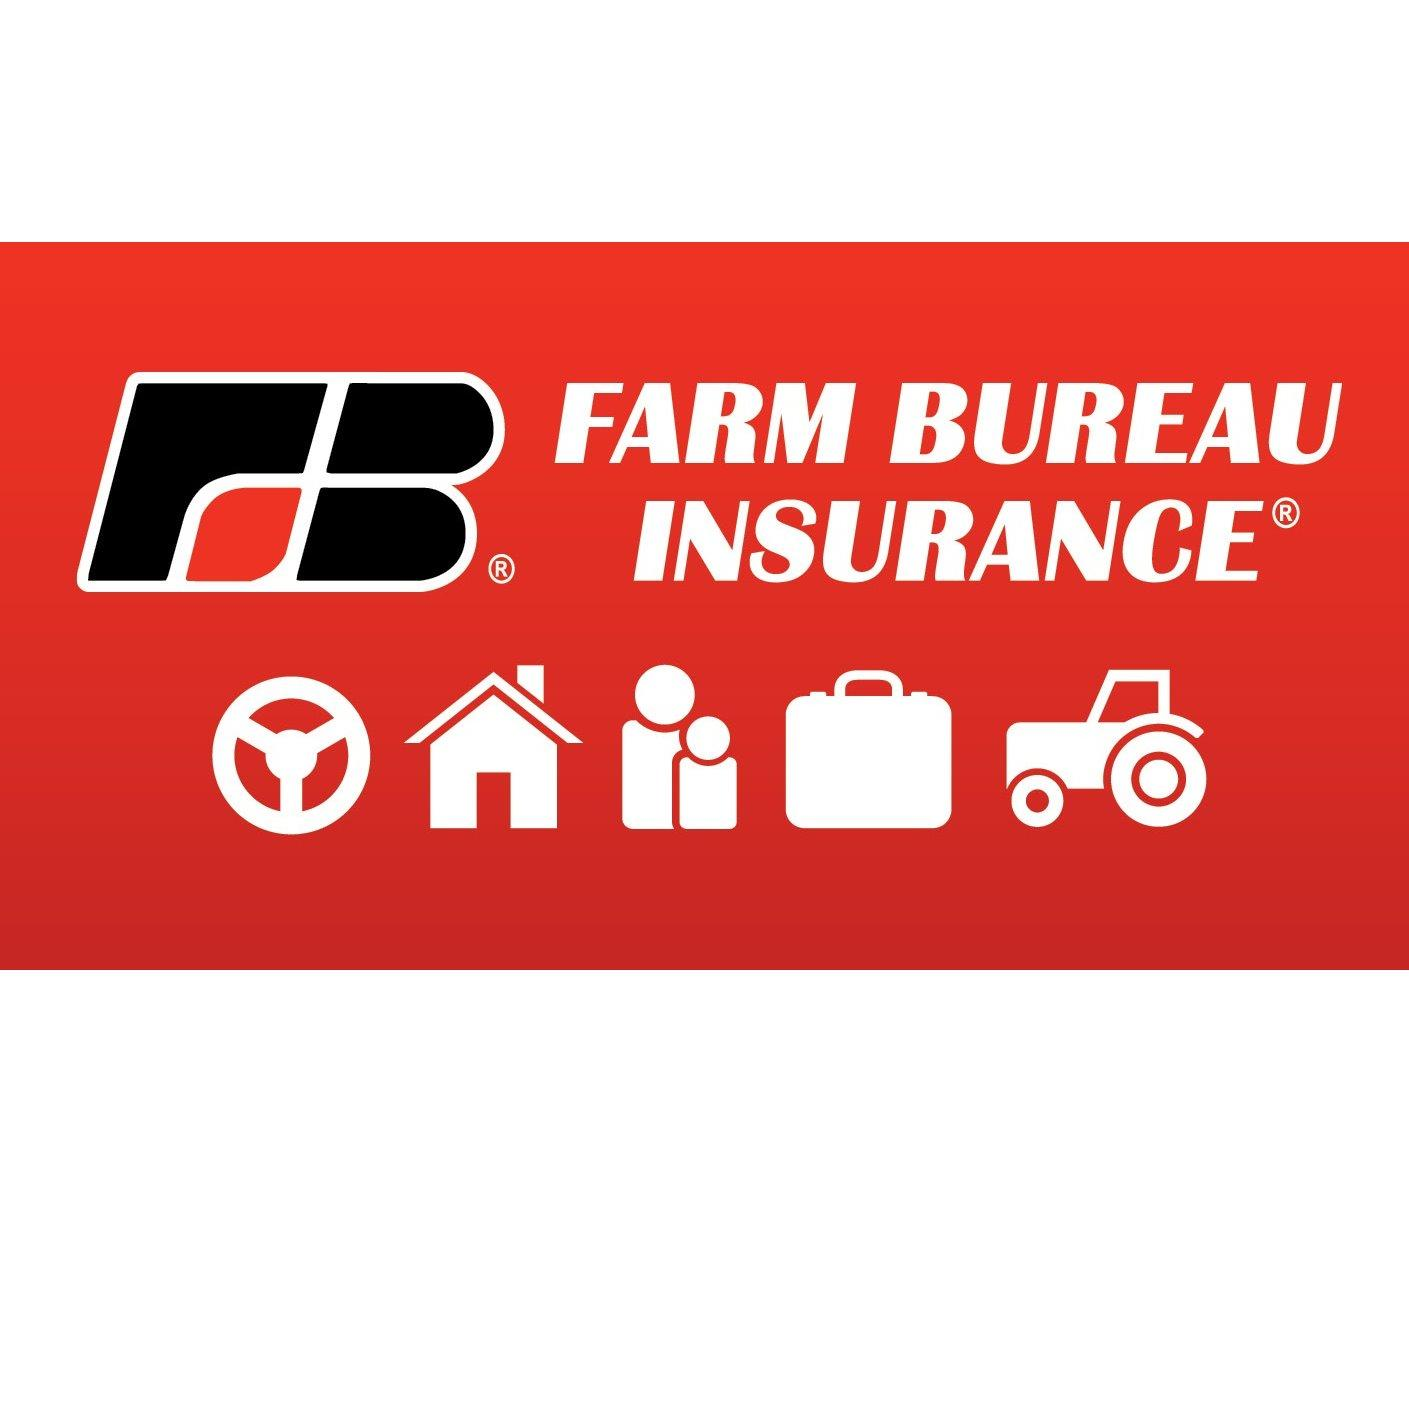 Farm Bureau: Michael Vereecke Insurance Agency image 2